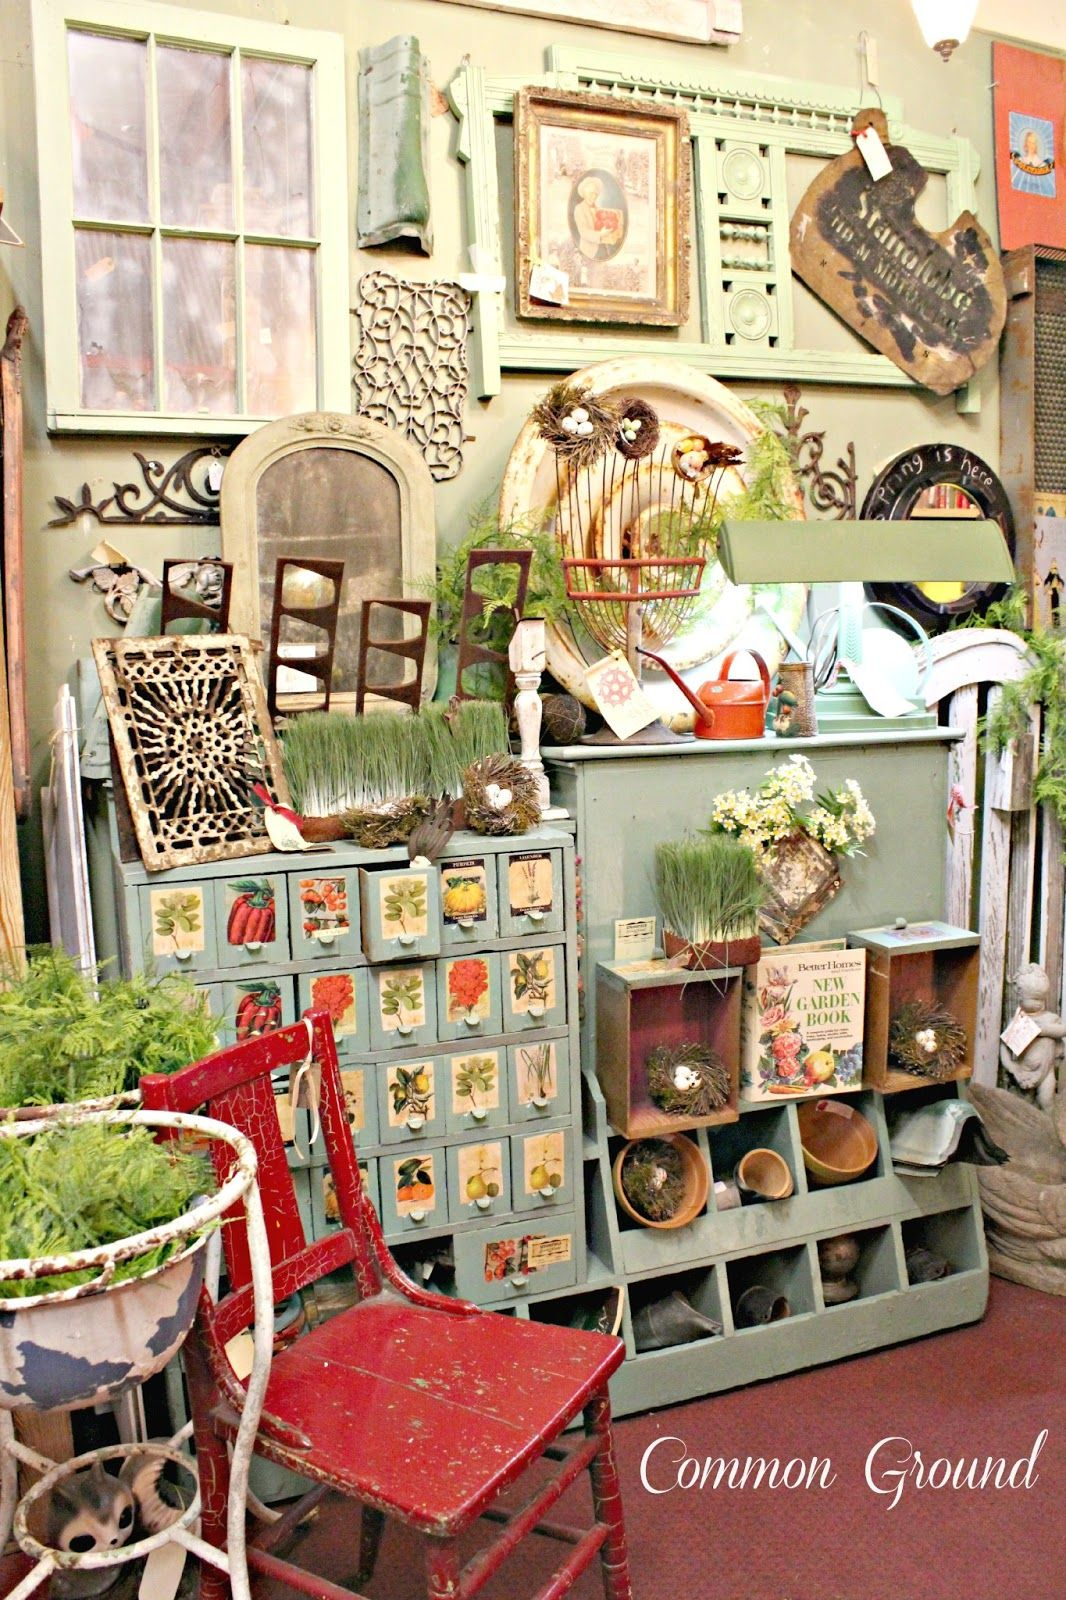 Pin by the cottage -well loved furnis on Shop/Display Ideas